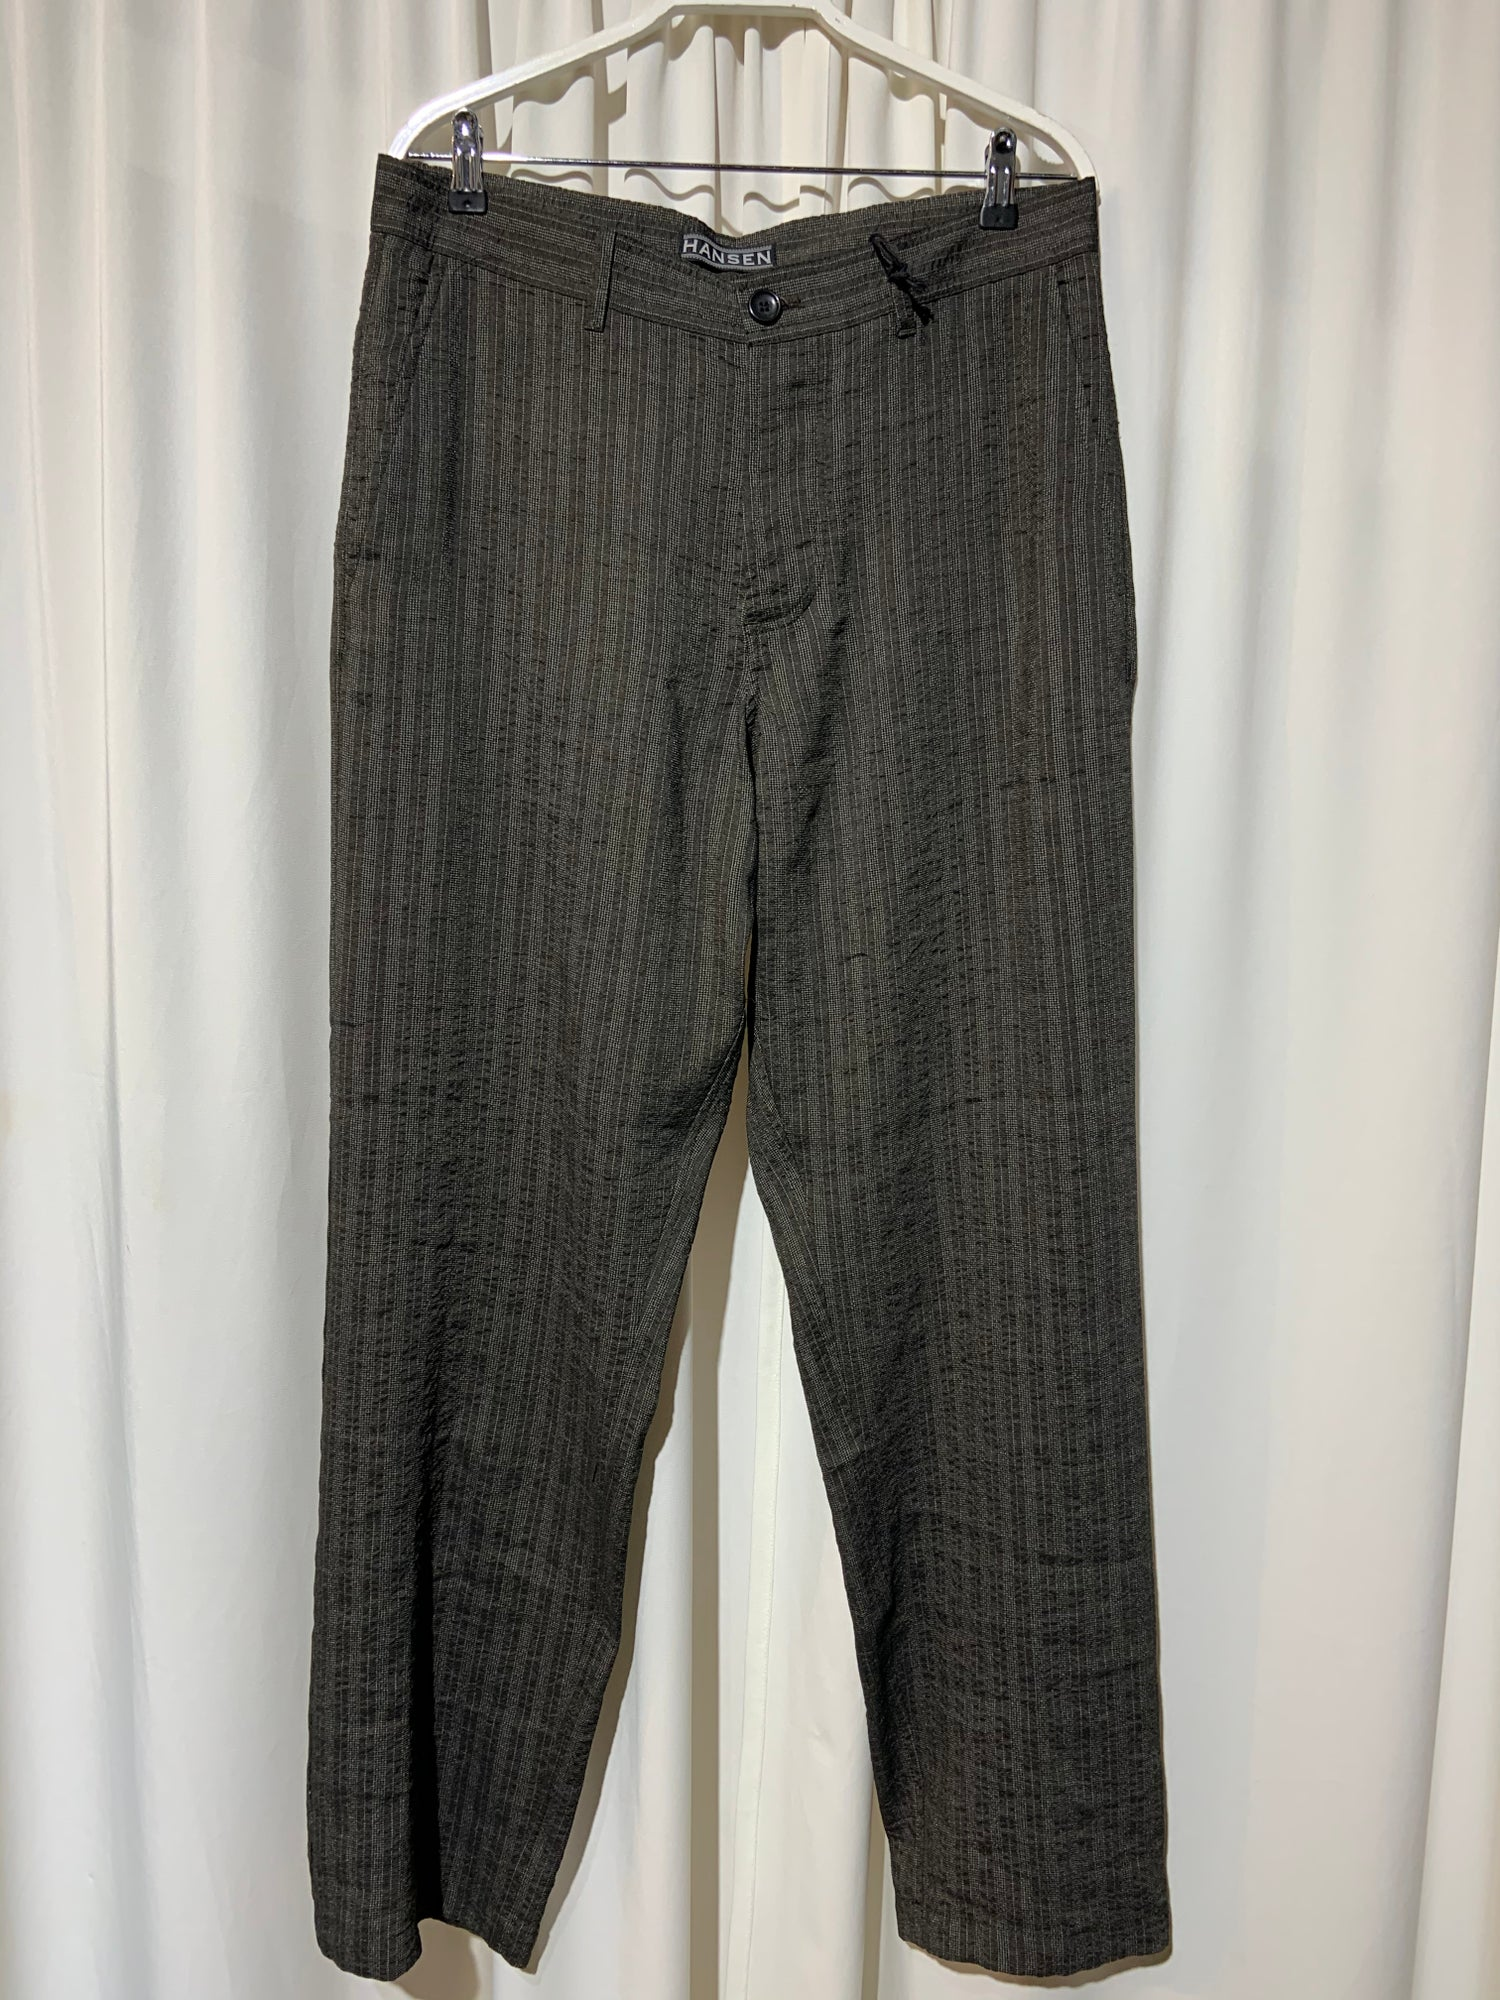 Image of HANSEN GARMENTS Trousers Ken taupe stripes